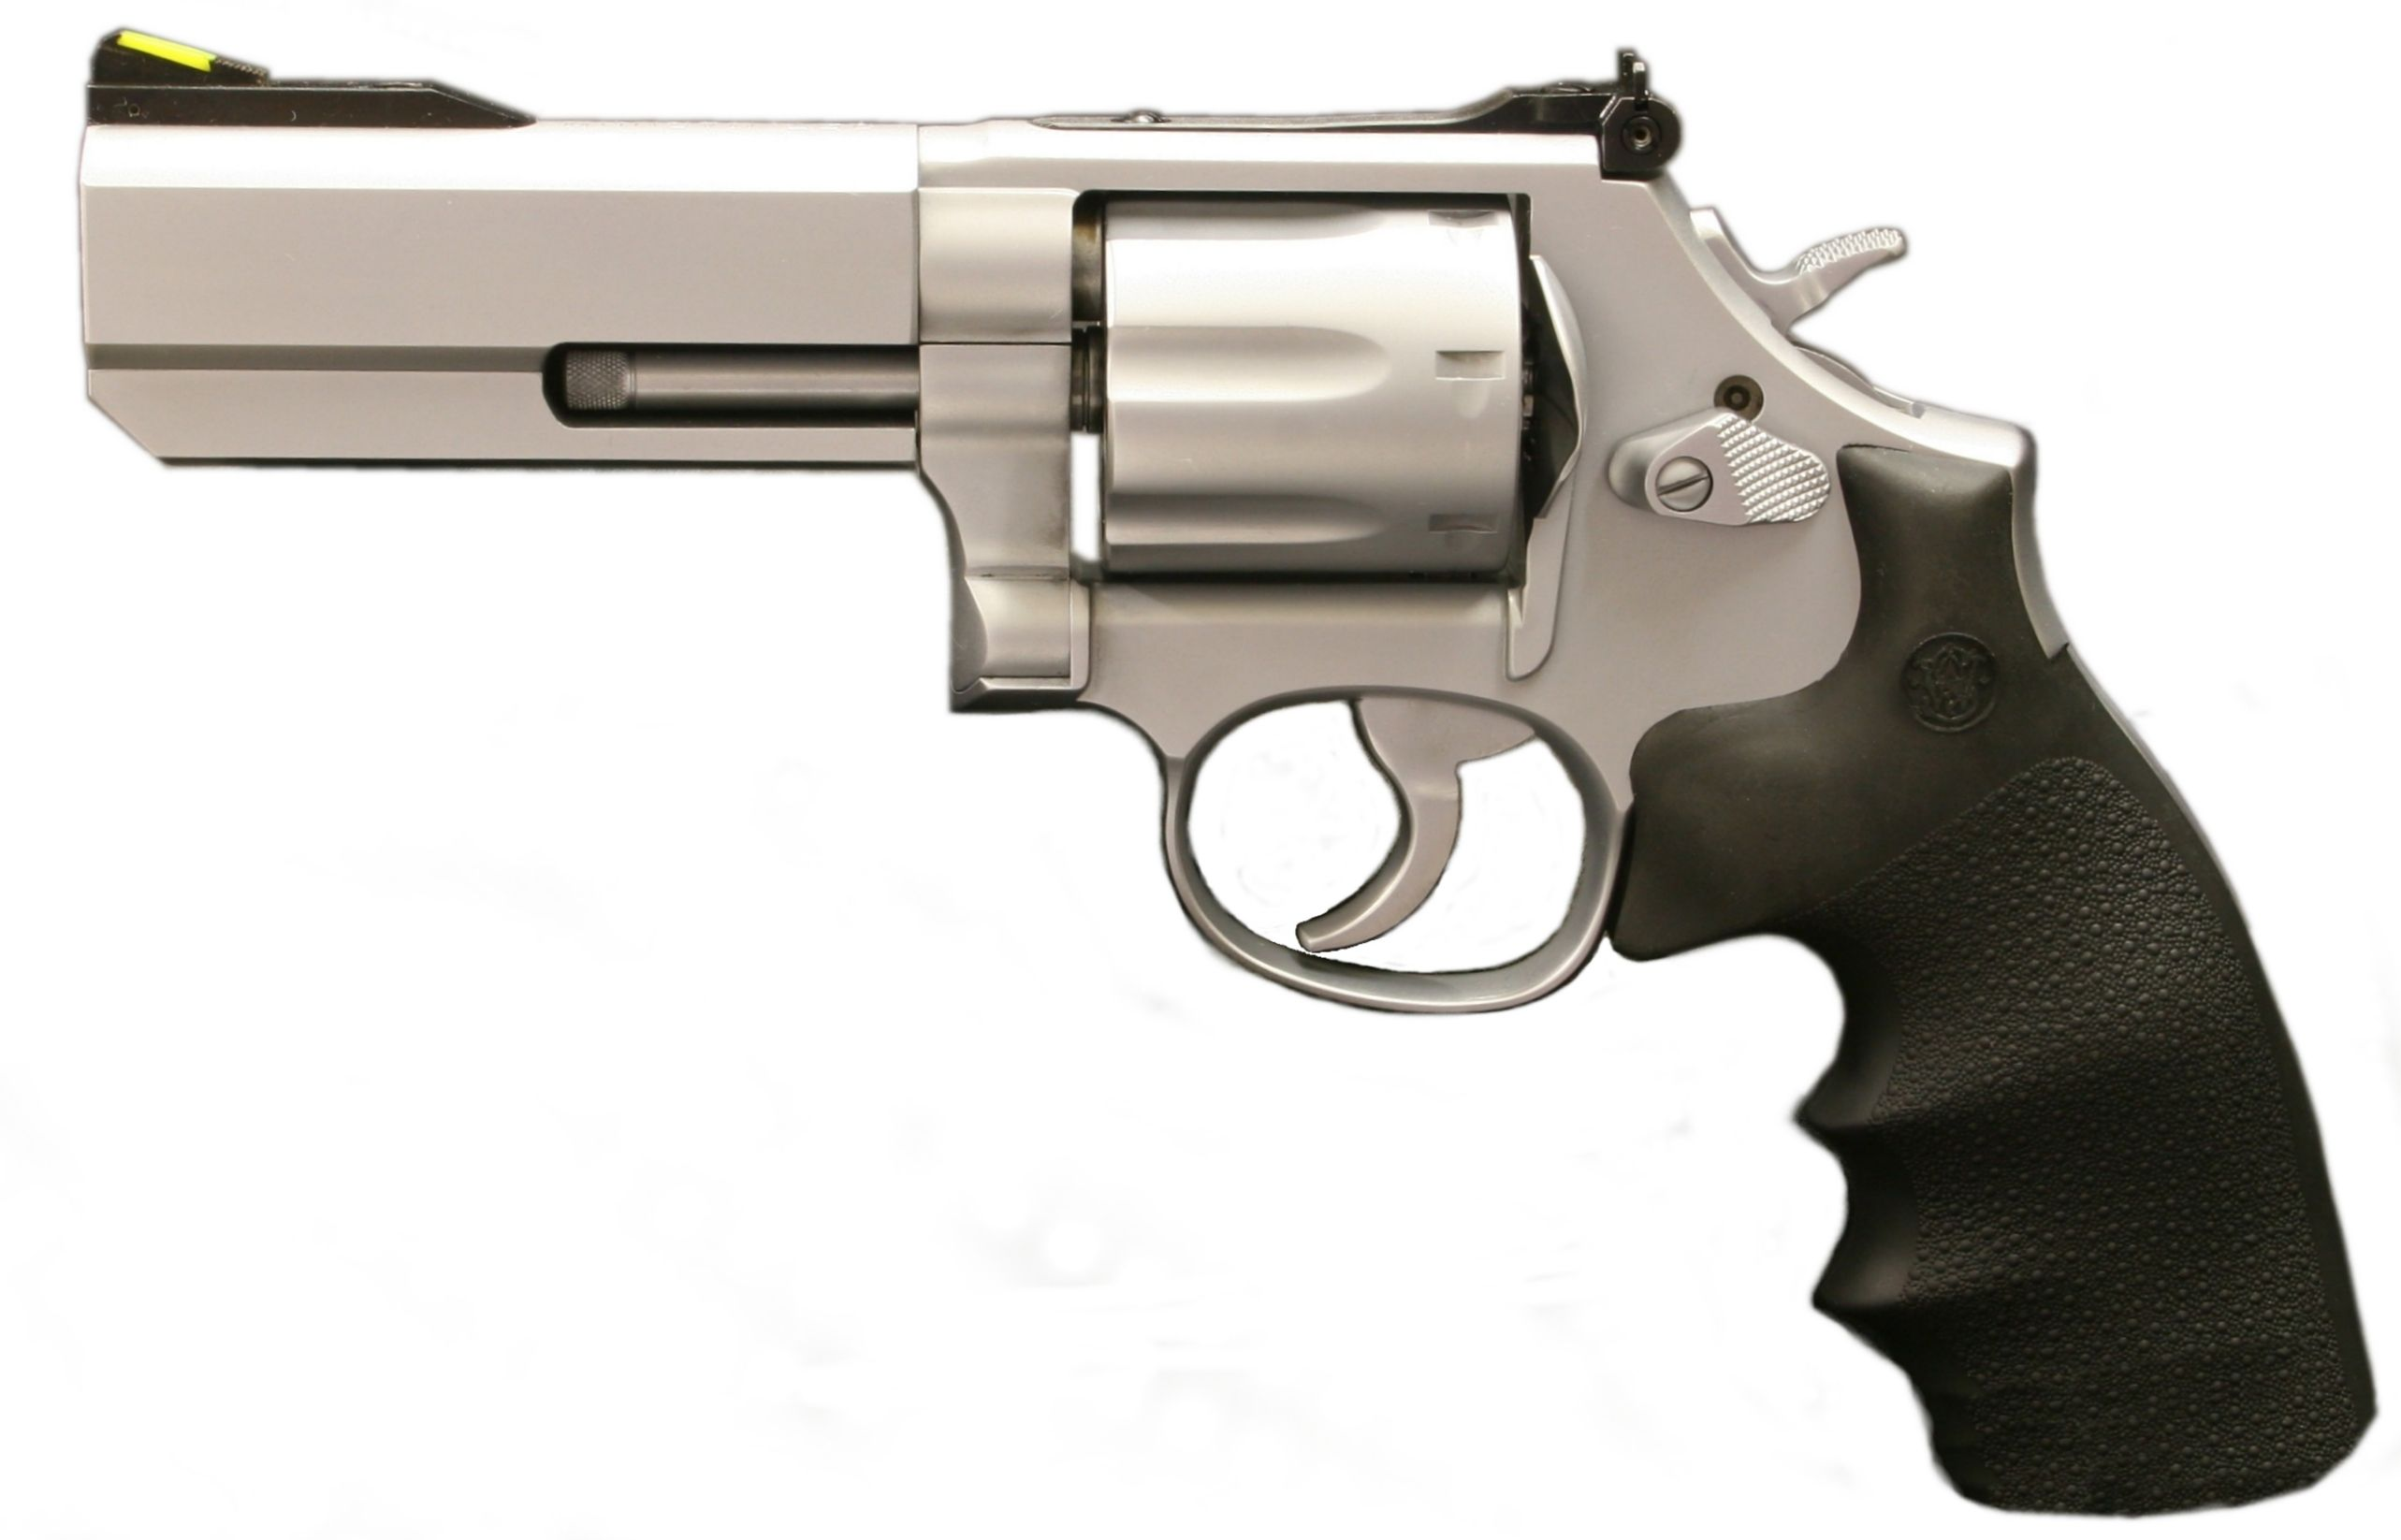 Custom Smith Wesson 686 357 Magnum Revolver Target Action Job Weigand Interchangeable